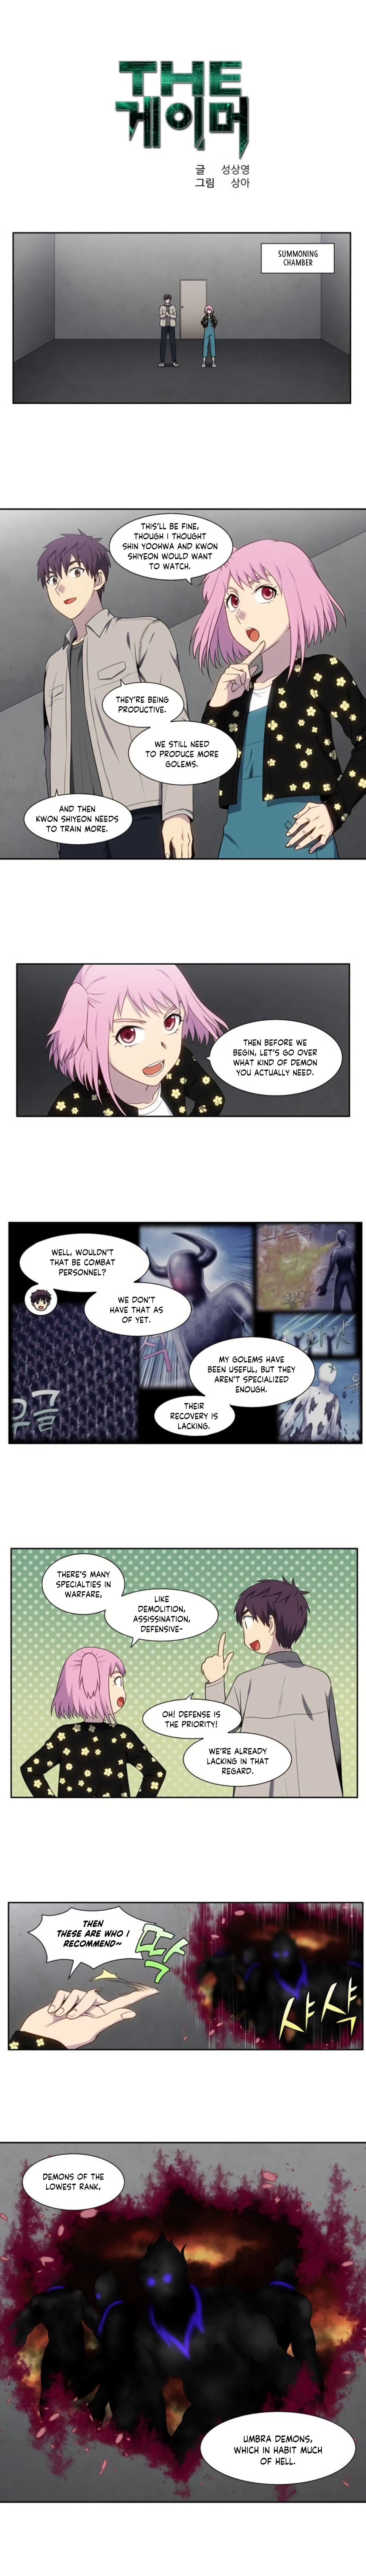 The Gamer - chapter 358 - #2